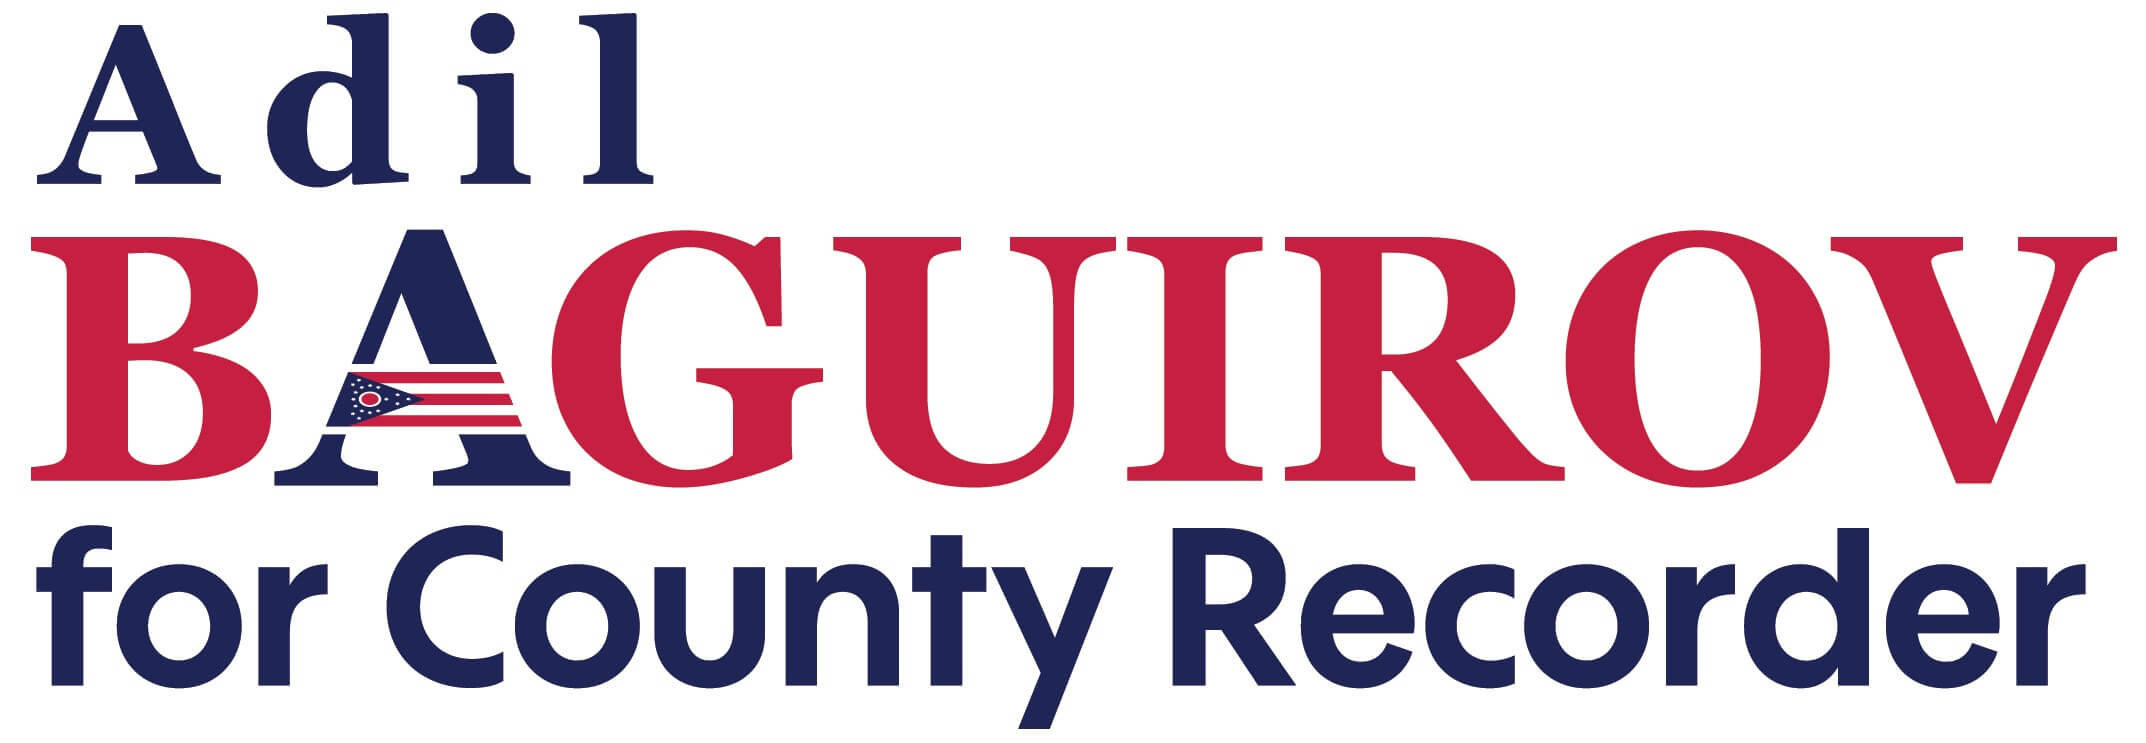 Adil Baguirov for County logo